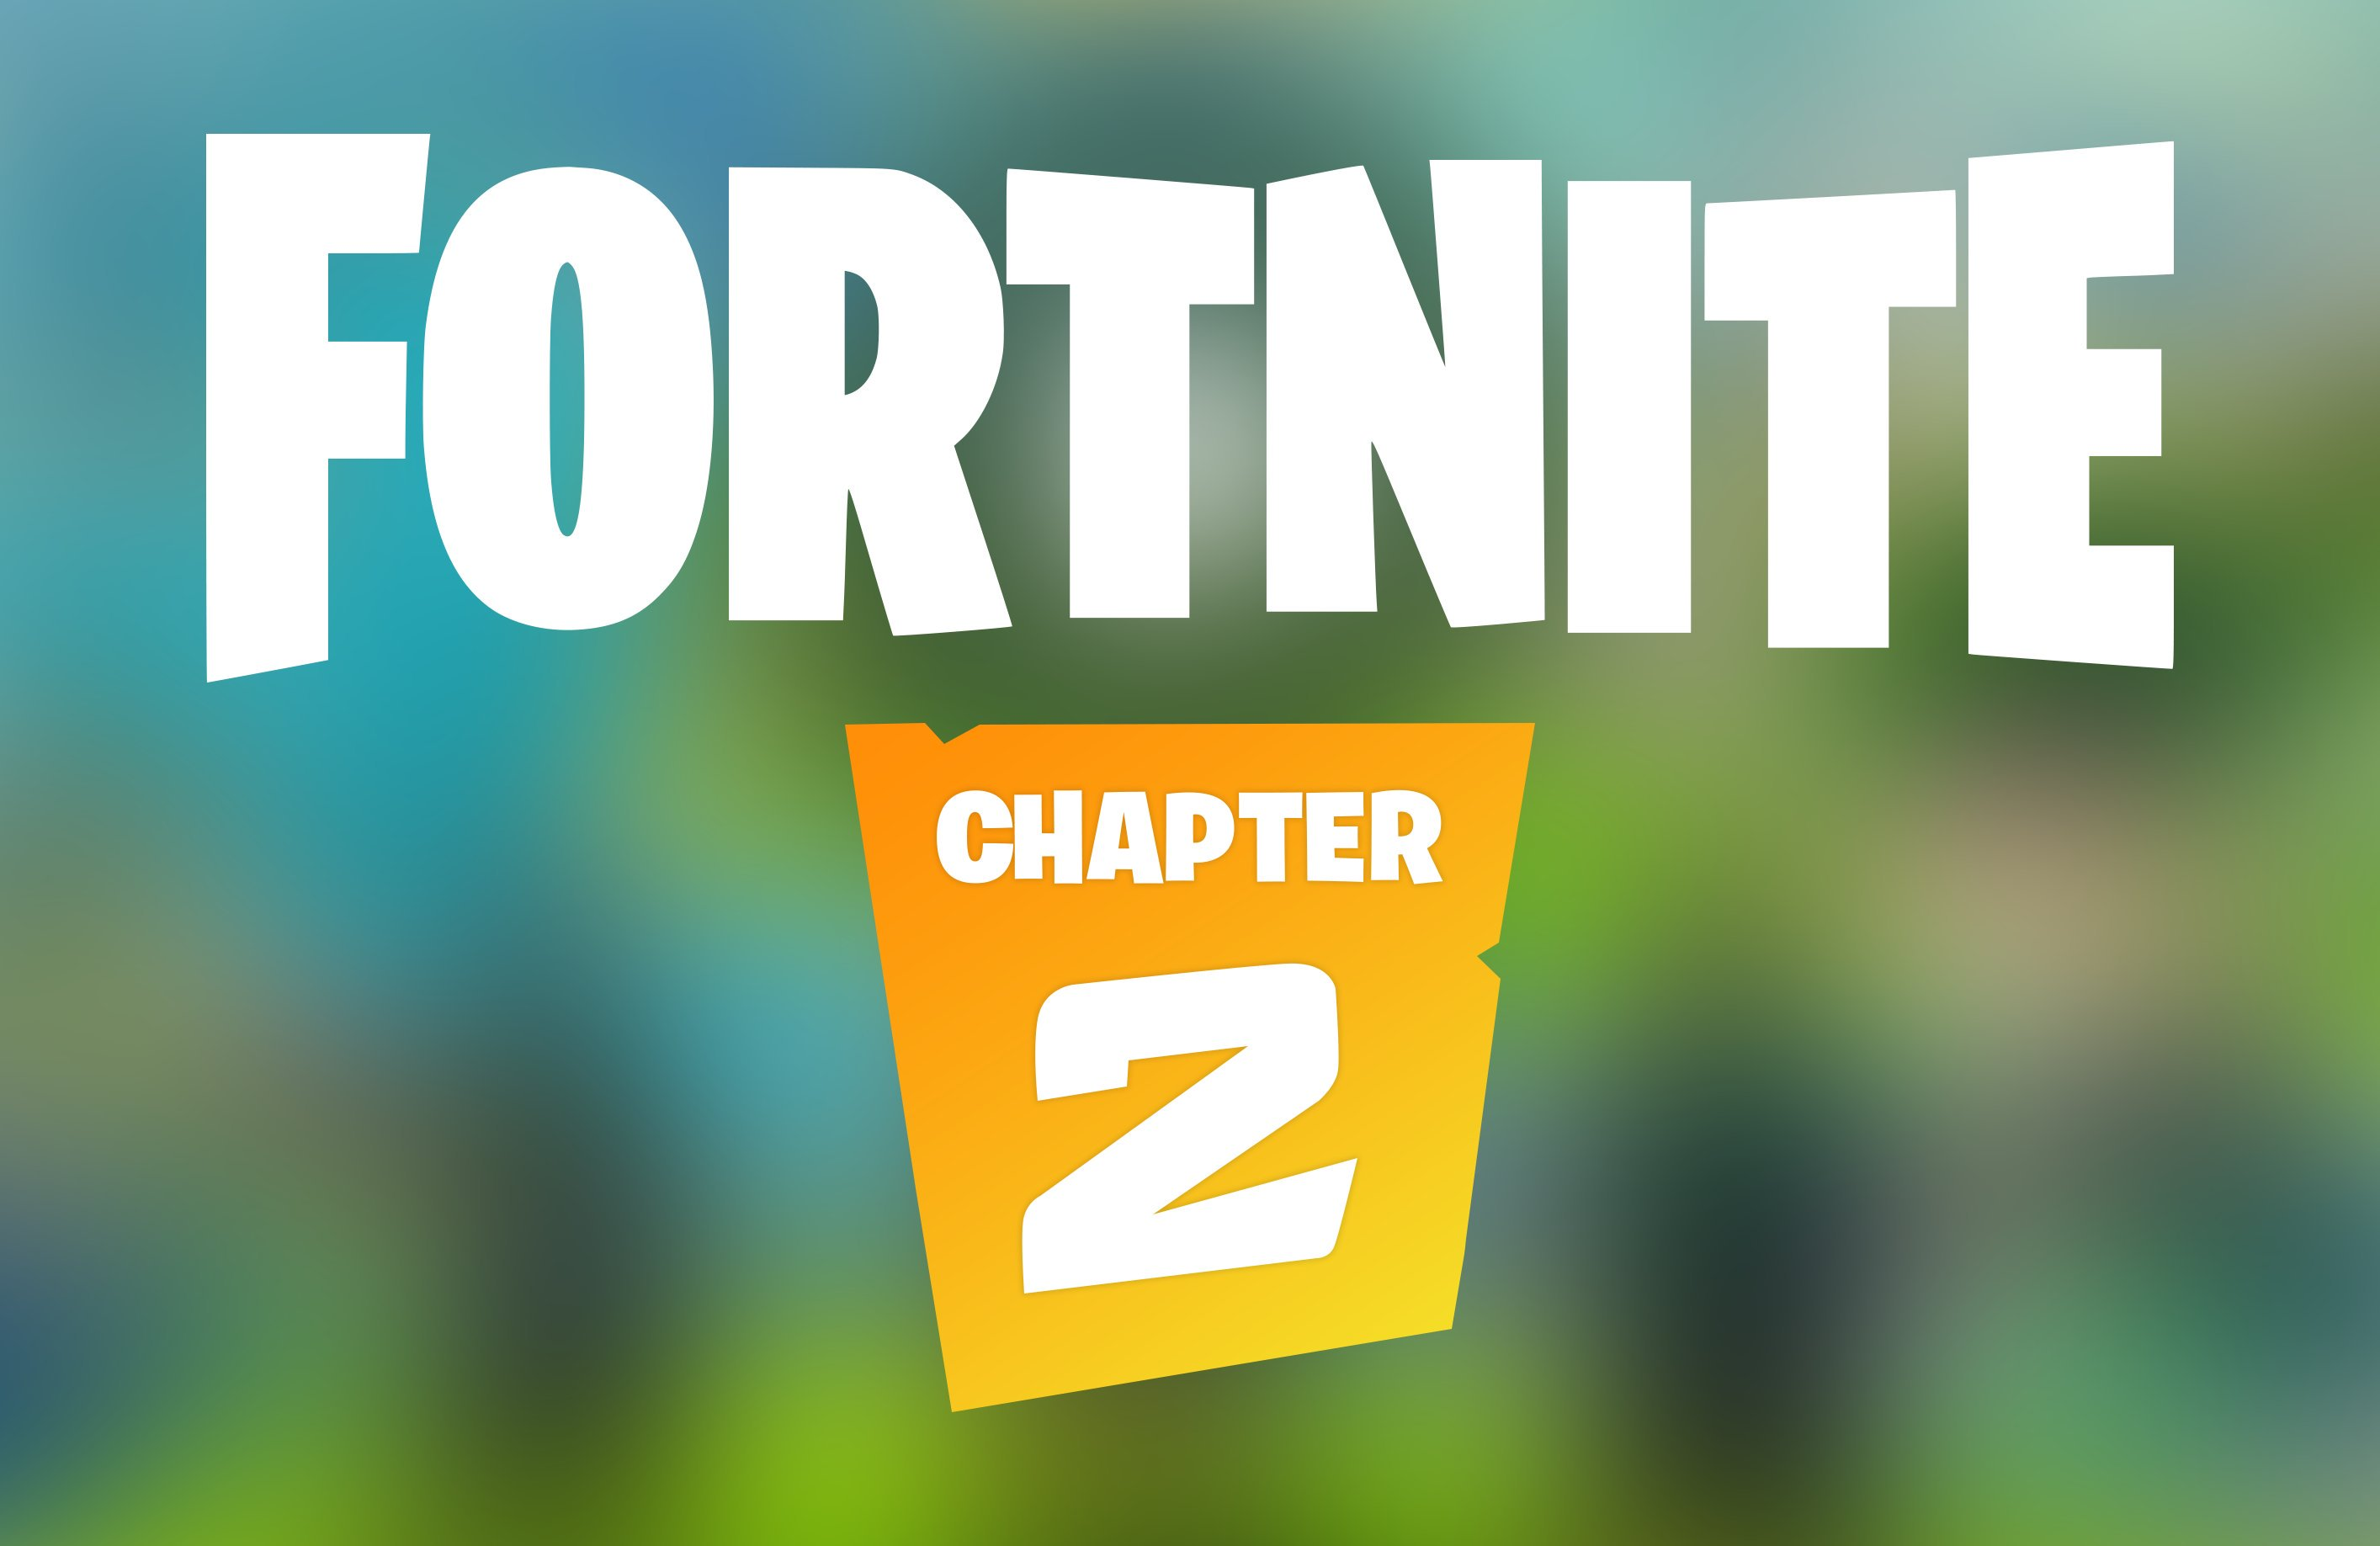 How To Find The Hidden Letter N In Fortnite Chapter 2